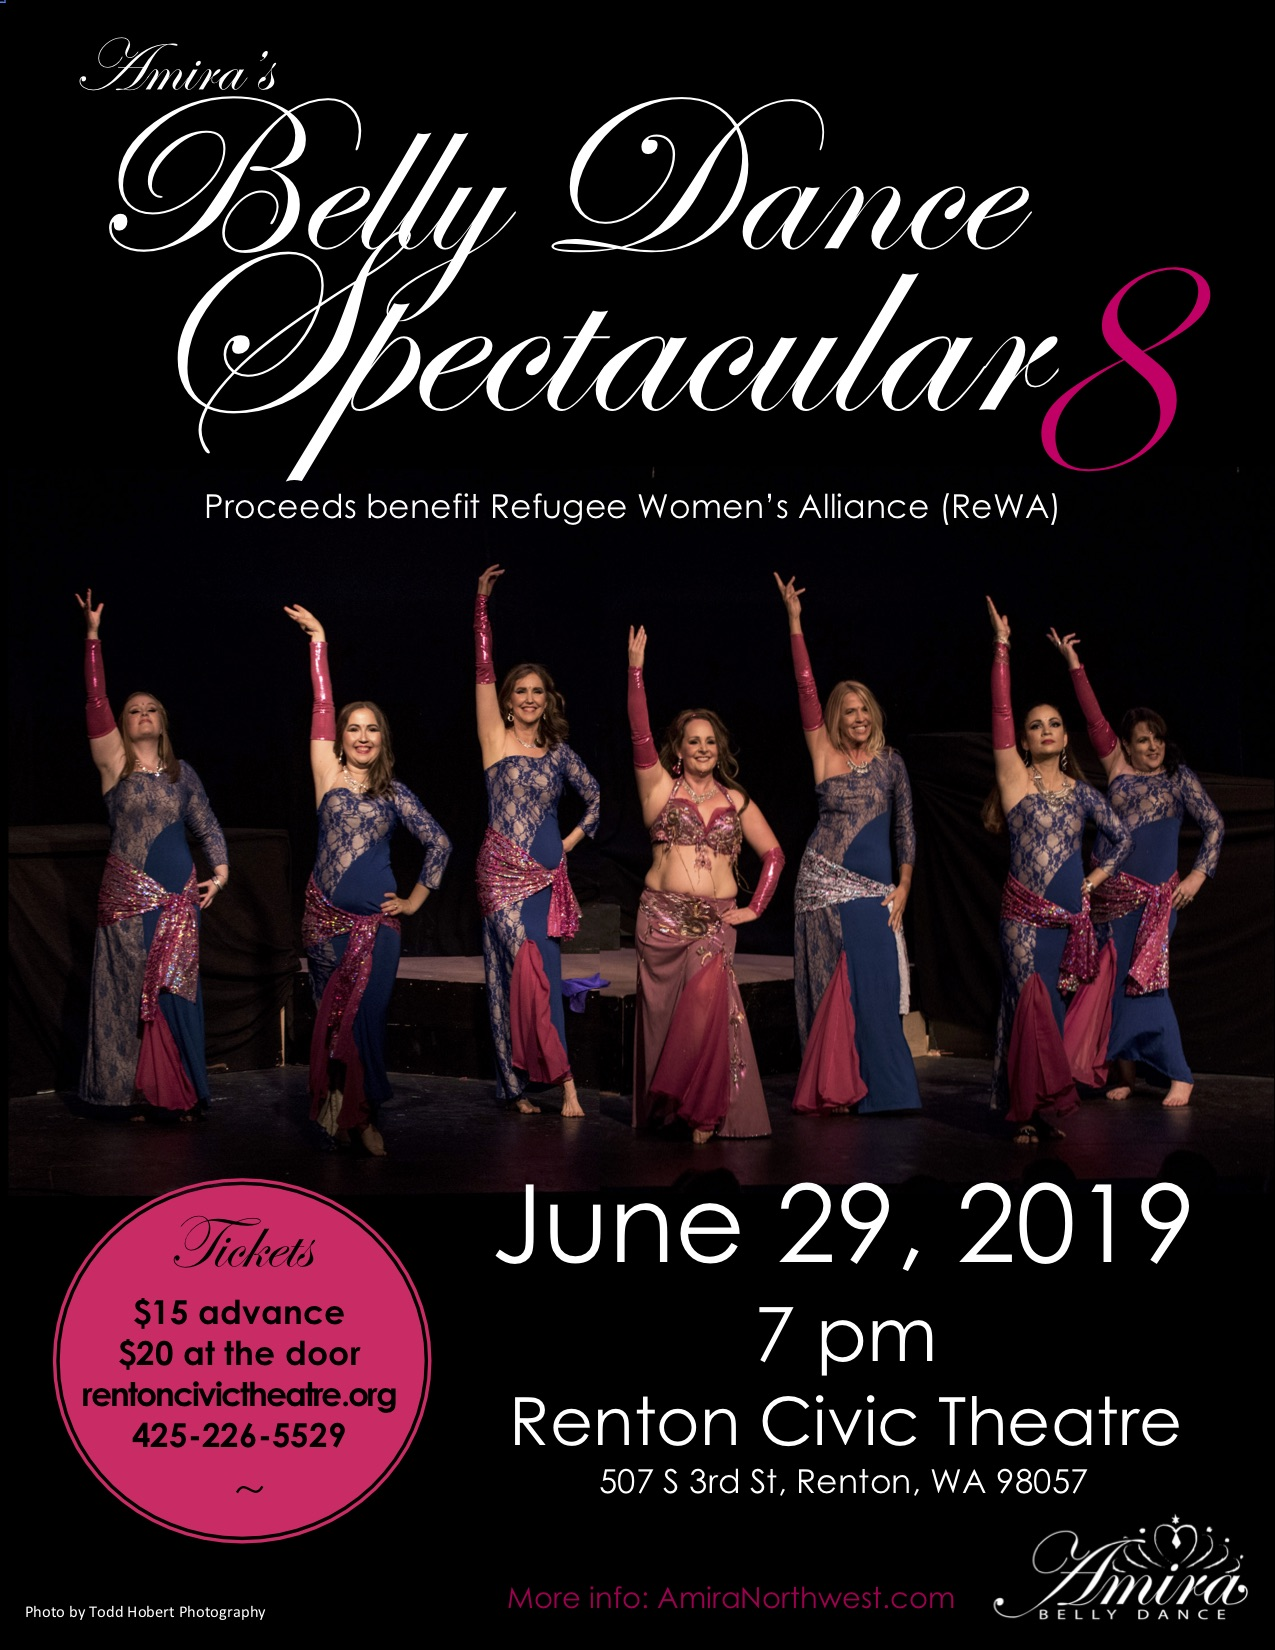 Belly Dance Spectacular 8 - Thank you to everyone who danced in the show and who supported us!  We raised over $1,600 for Refugee Women's Alliance!  Much love to all.